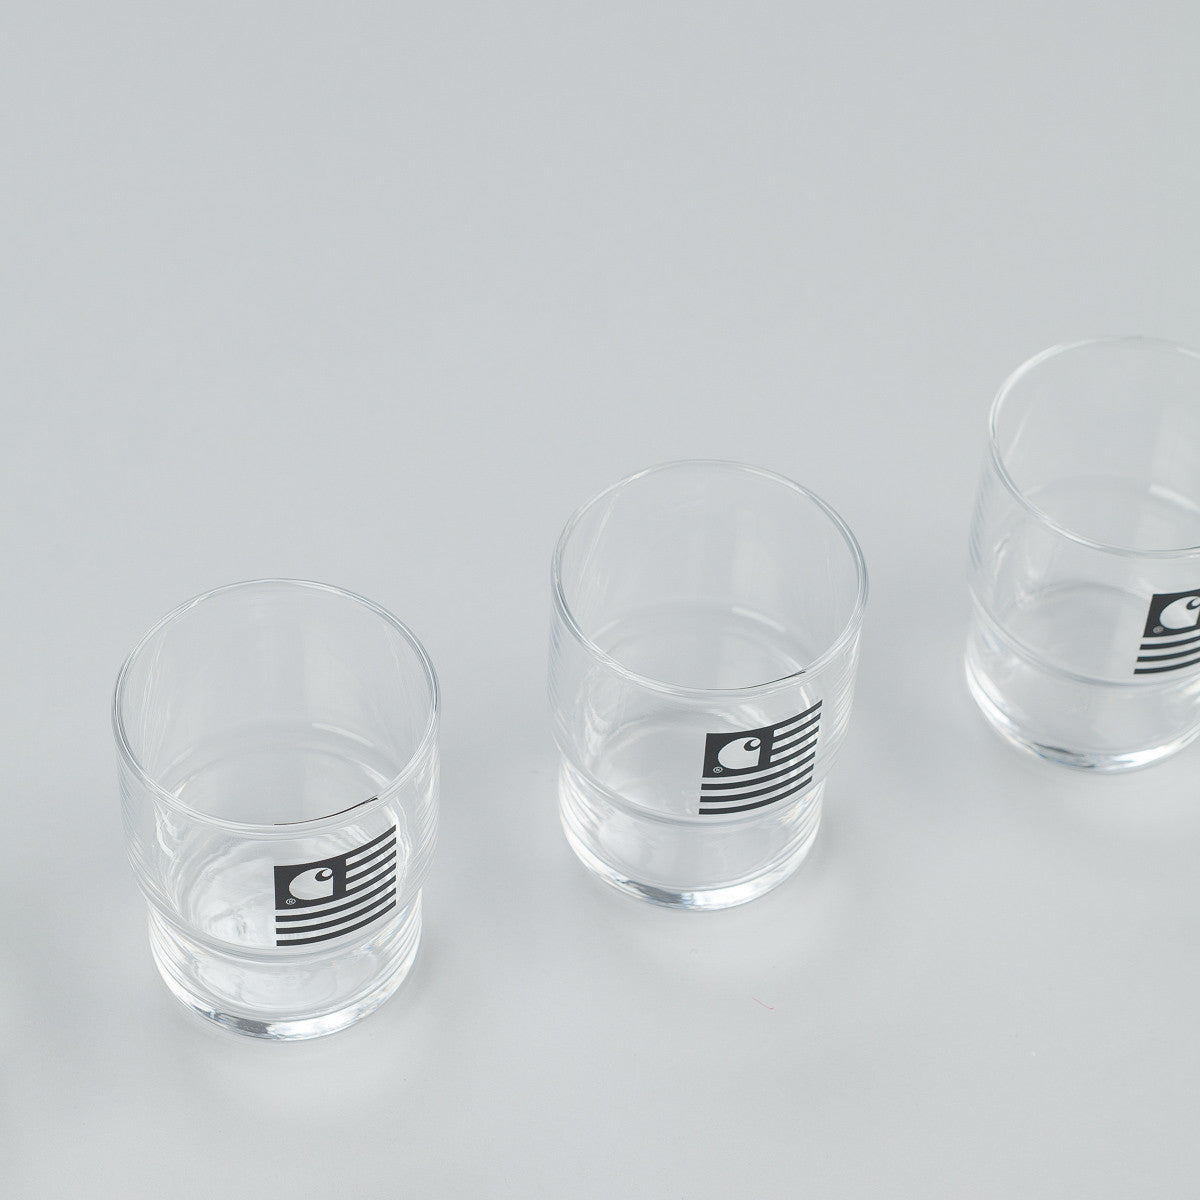 Carhartt Stackable Glasses Set - Black Graphic